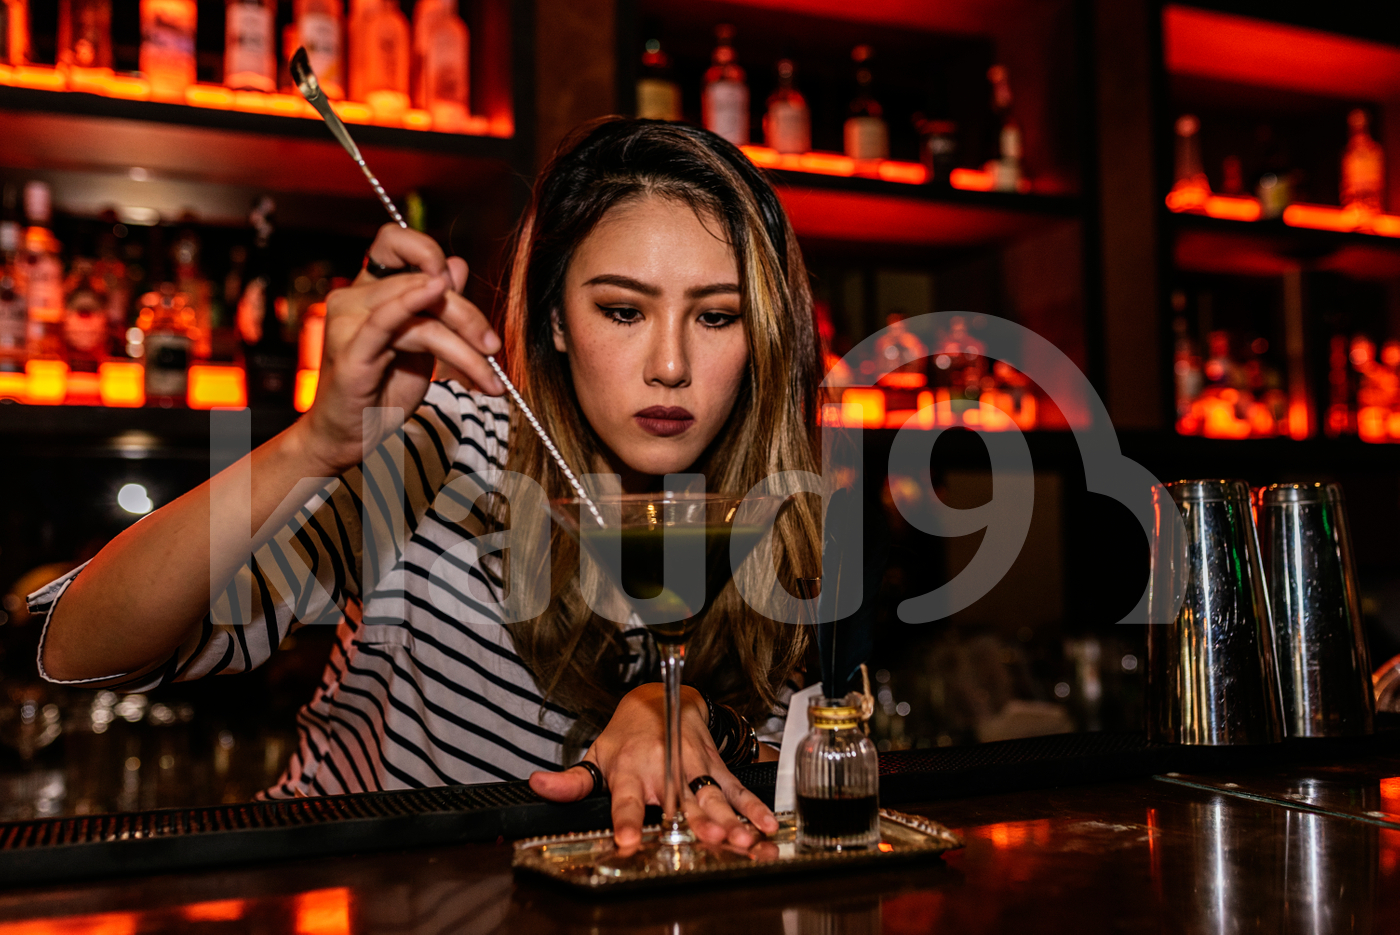 Asian bartender stirring cocktail drink using bar spoon